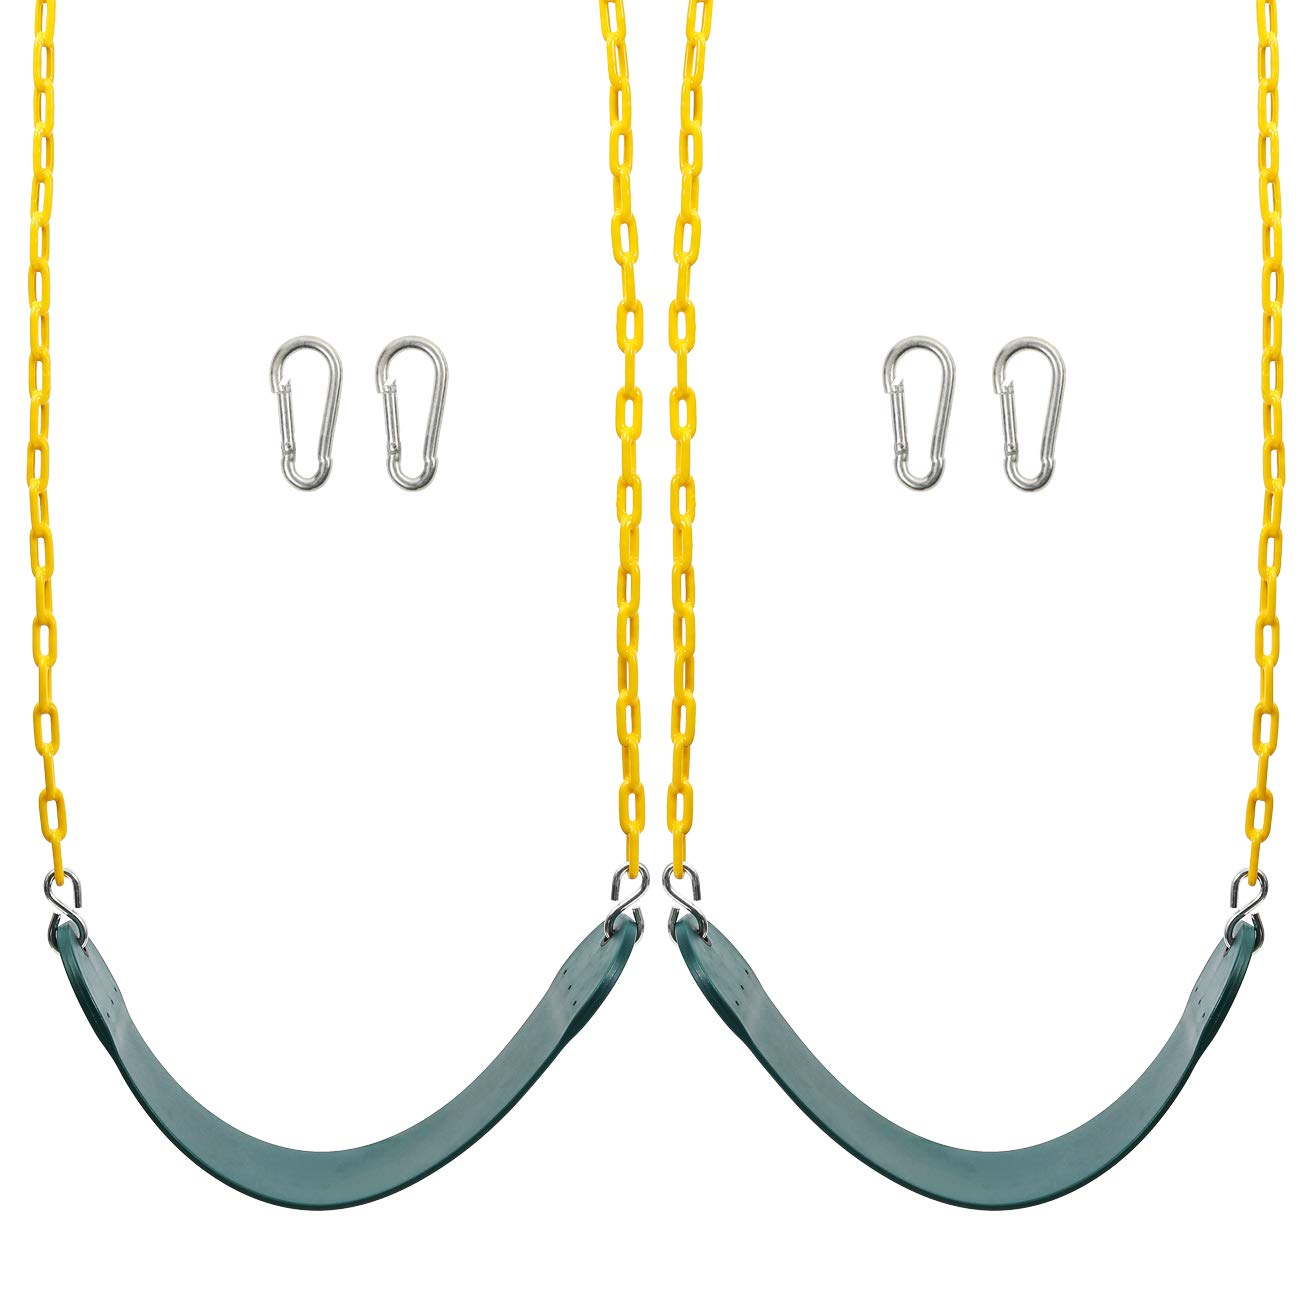 Sunnyglade 2PCS Swings Seats Heavy Duty with 66'' Chain Plastic Coated, Playground Swing Set Accessories Replacement with Snap Hooks, Support 250lb by Sunnyglade